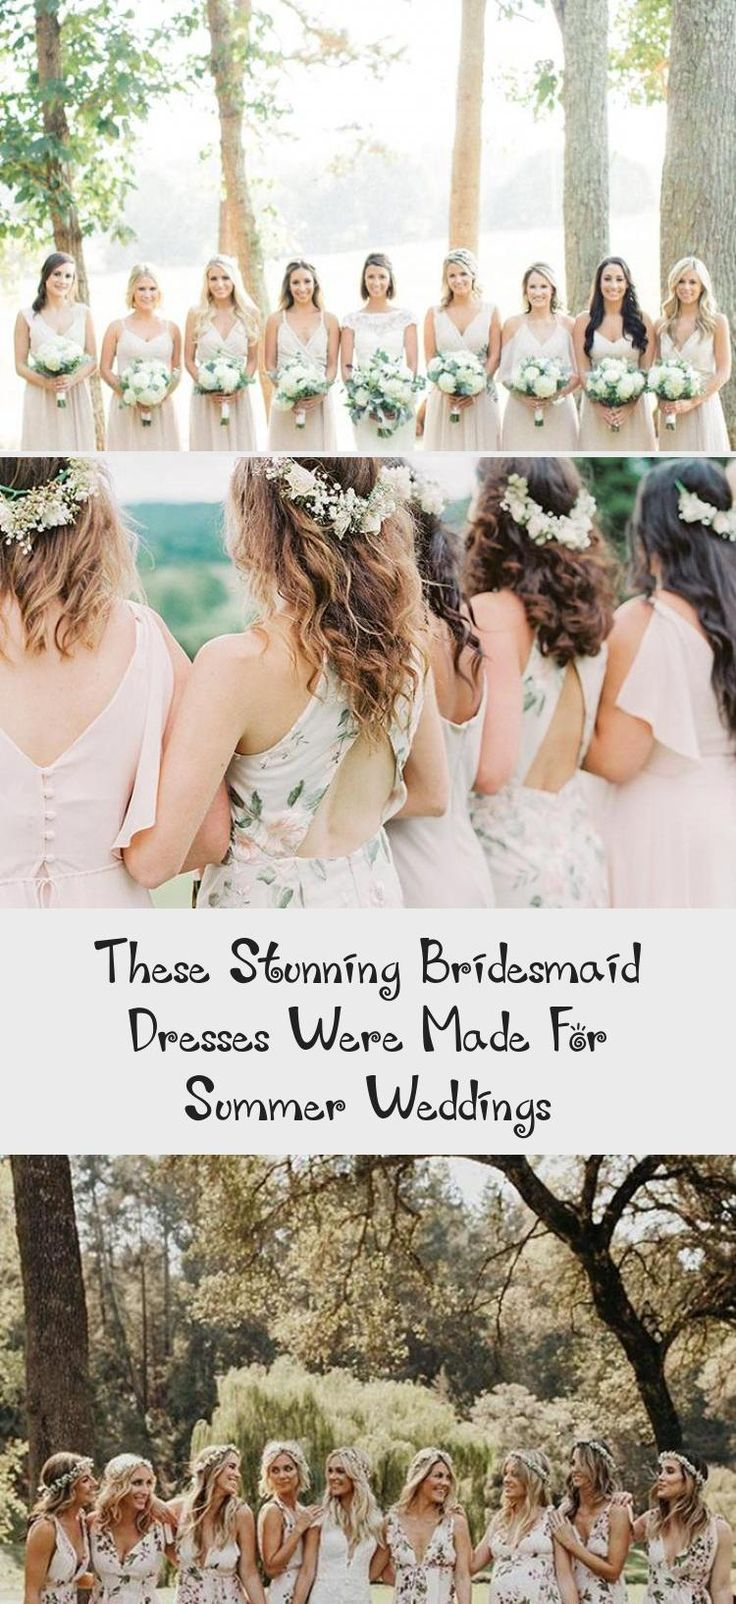 The Most Stunning Summer Bridesmaid Dresses Of 2018 #WeddingBridesmaidDresses #CheapBridesmaidDresses #UniqueBridesmaidDresses #BridesmaidDressesStyles #MixAndMatchBridesmaidDresses